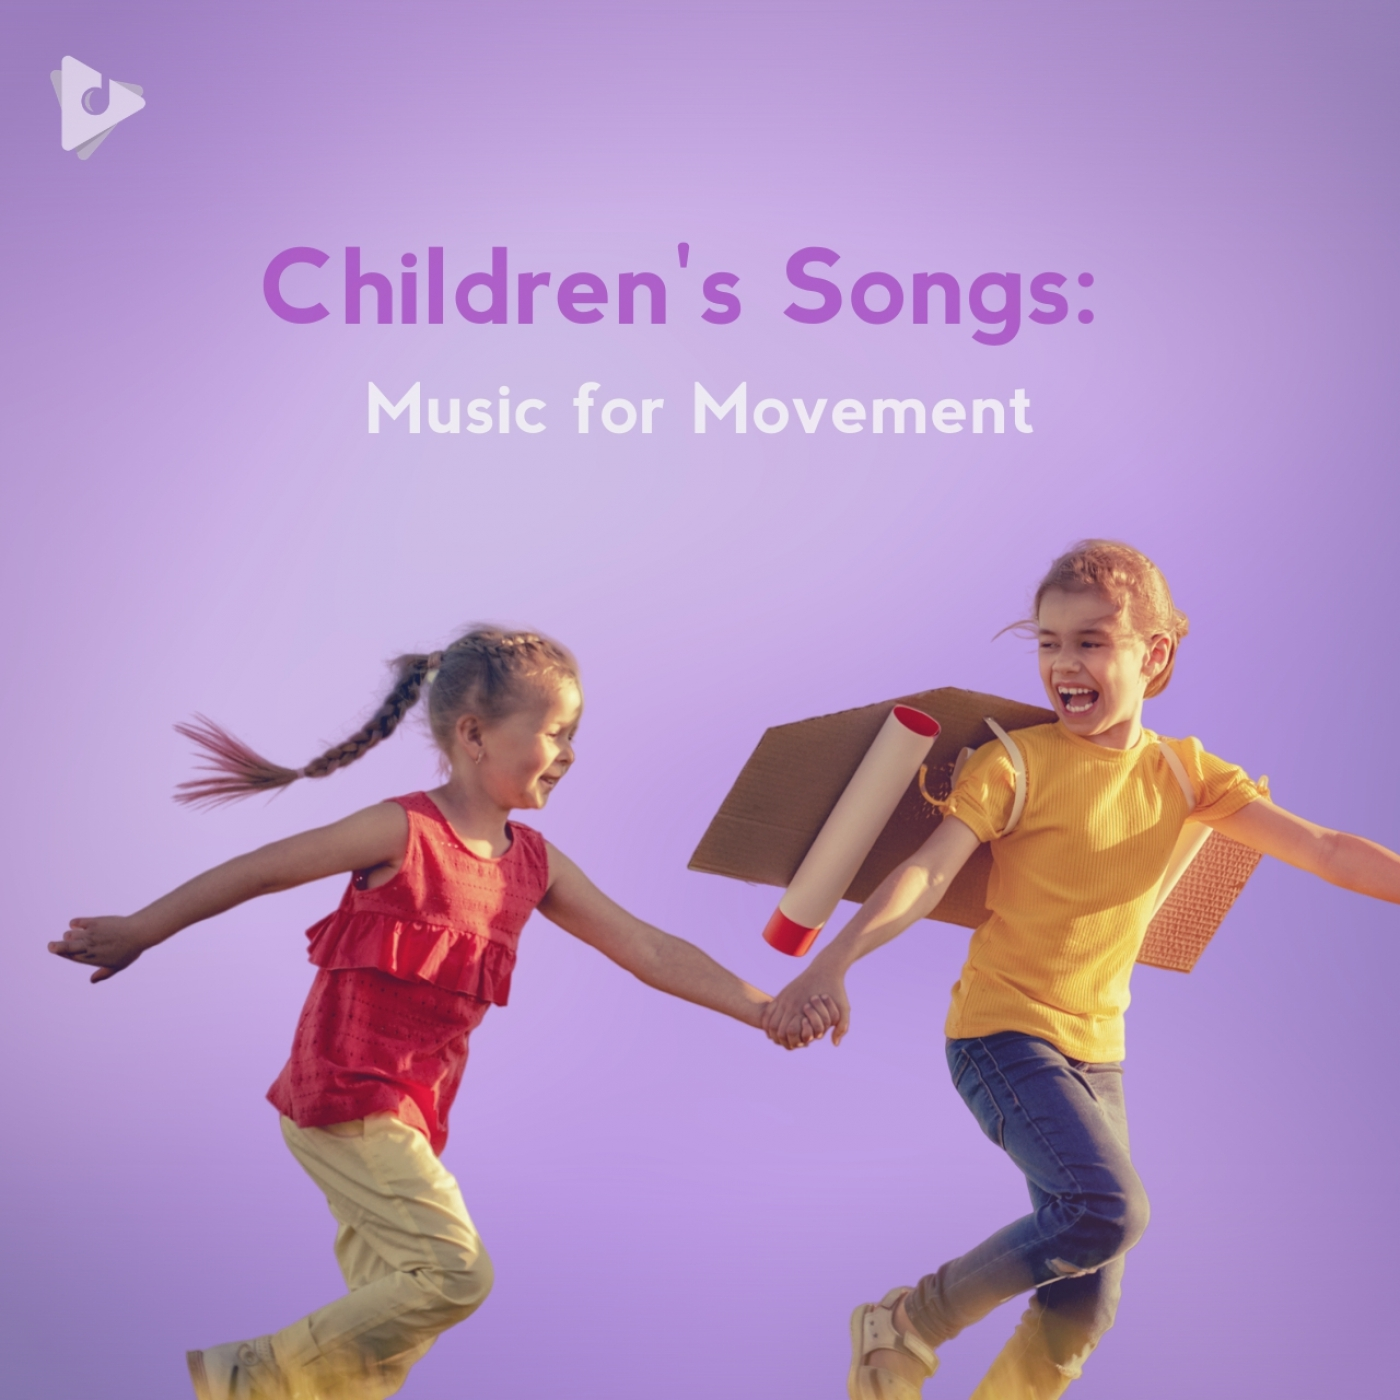 Children's Songs: Music for Movement